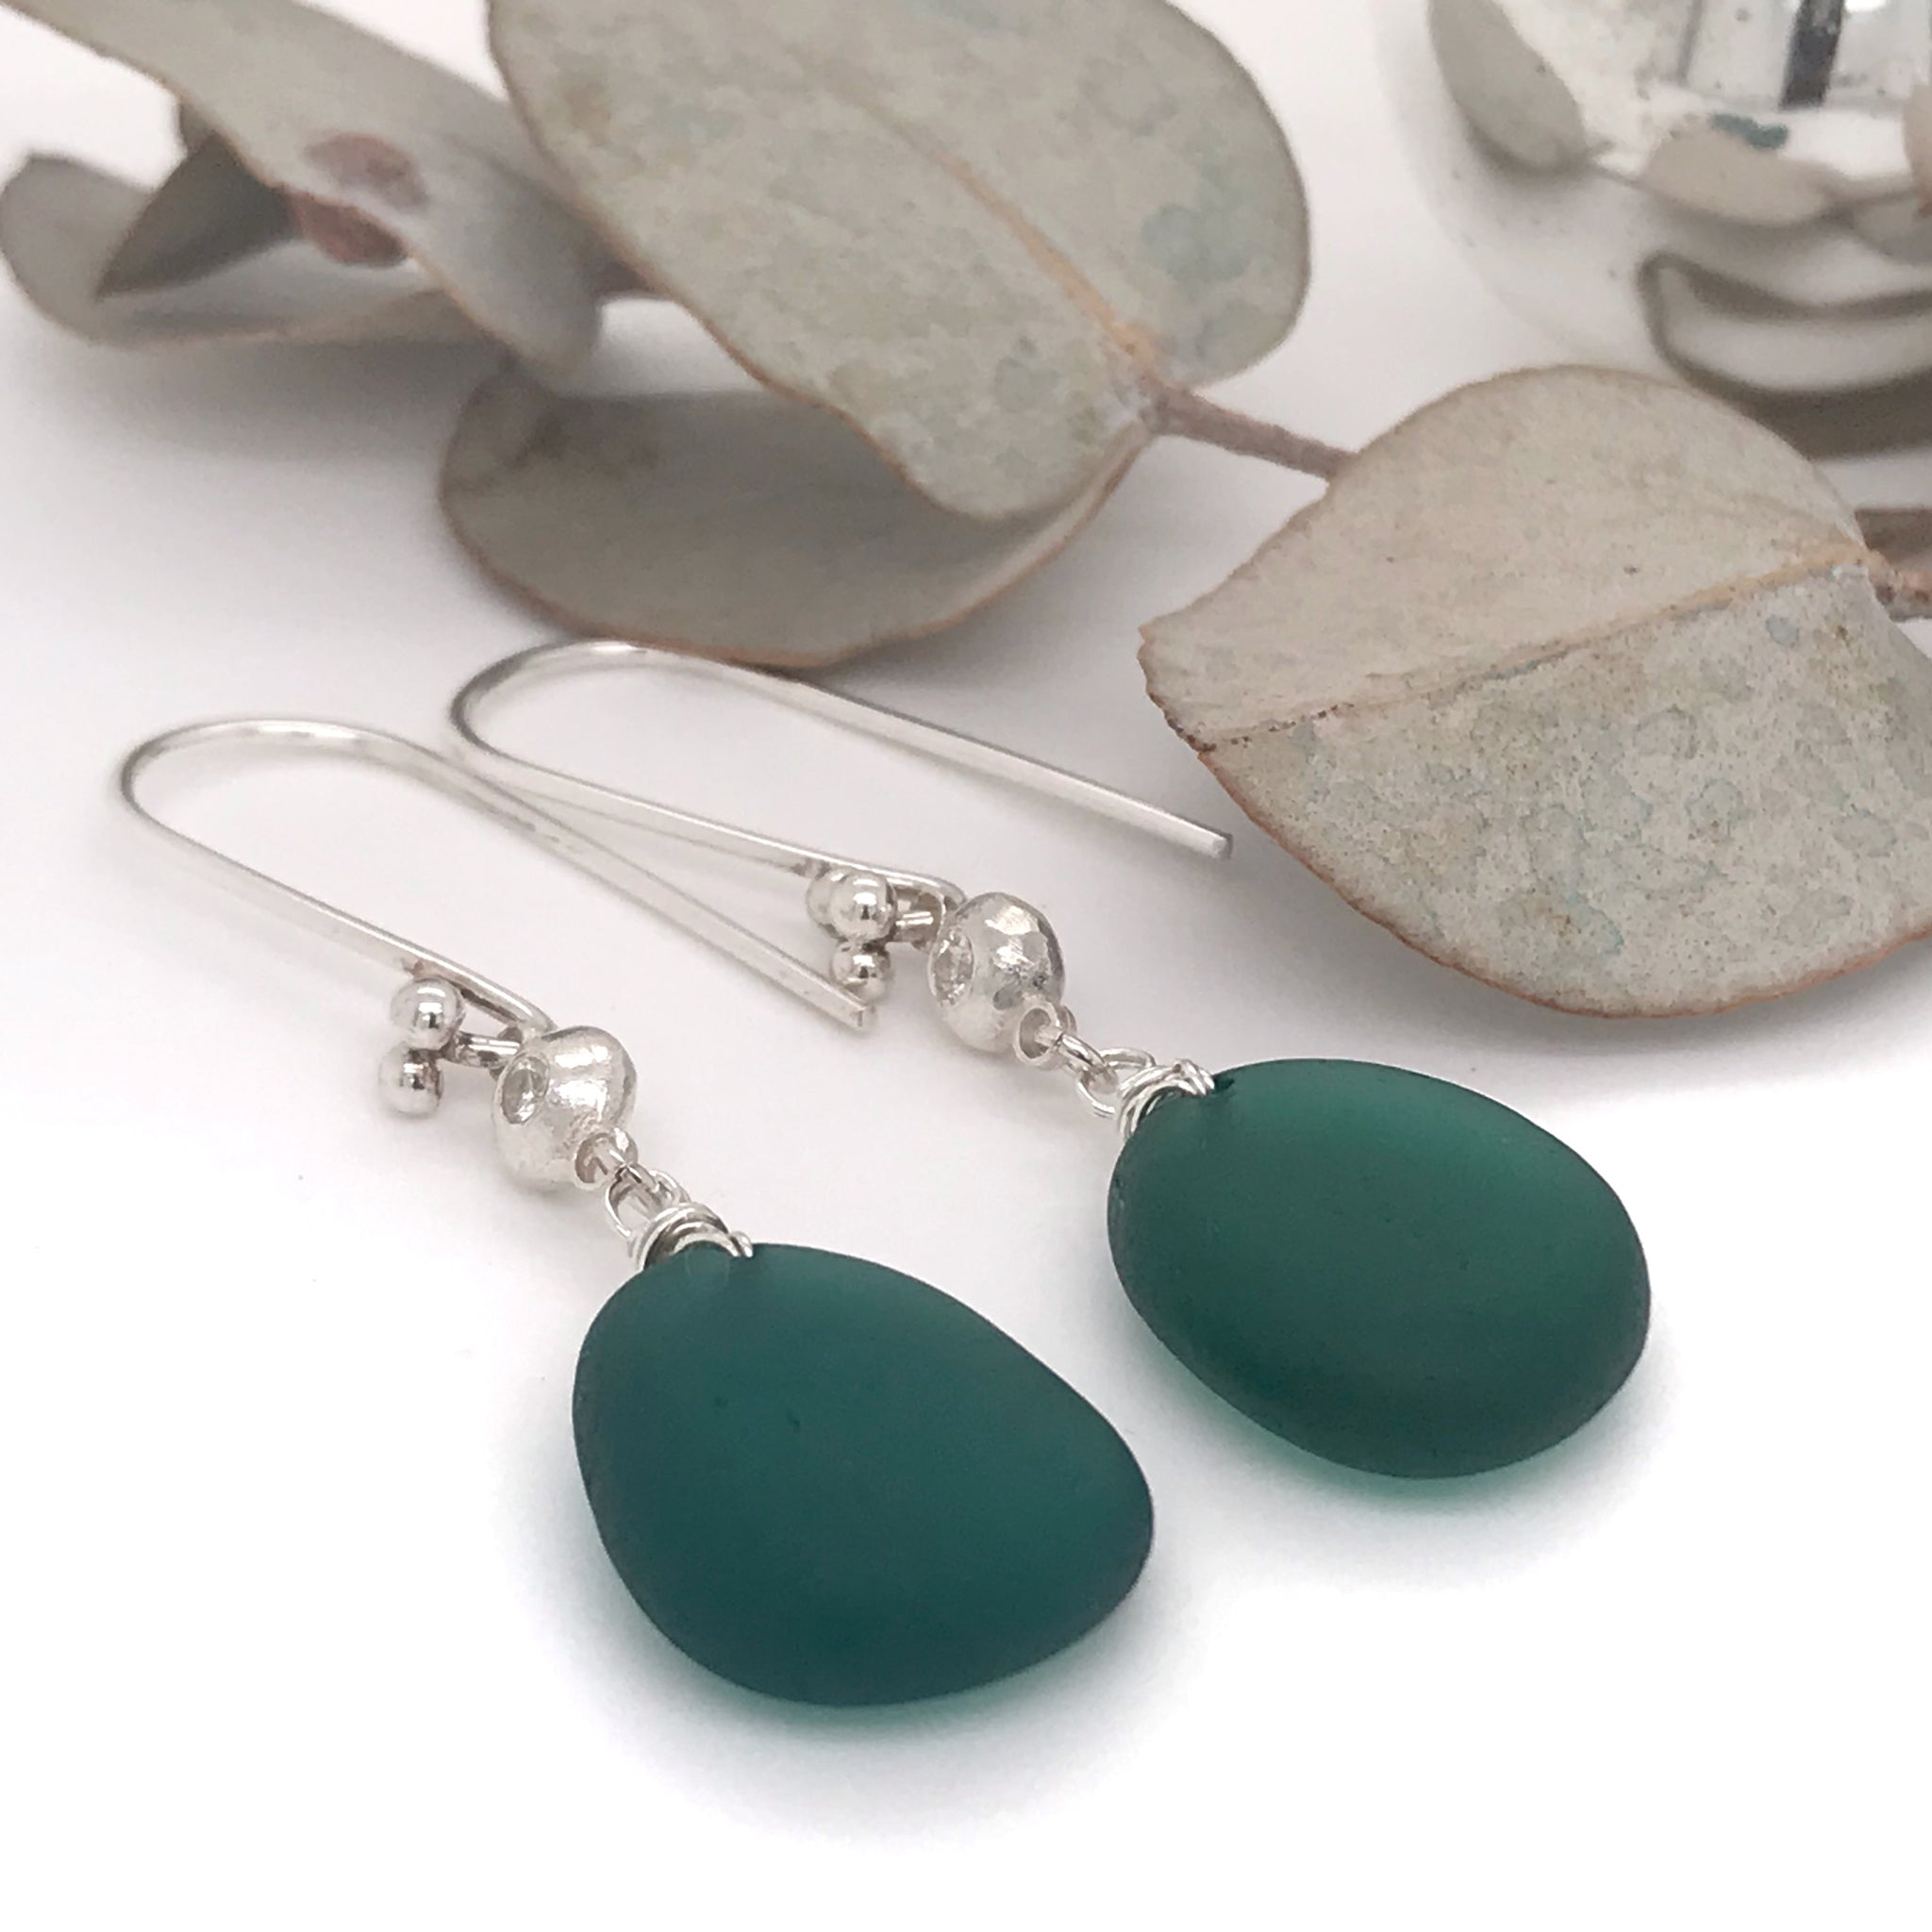 teal-green-sea-glass-earrings-sterling-silver-with-white-sapphires-kriket-broadhurst-jewellery-Australia